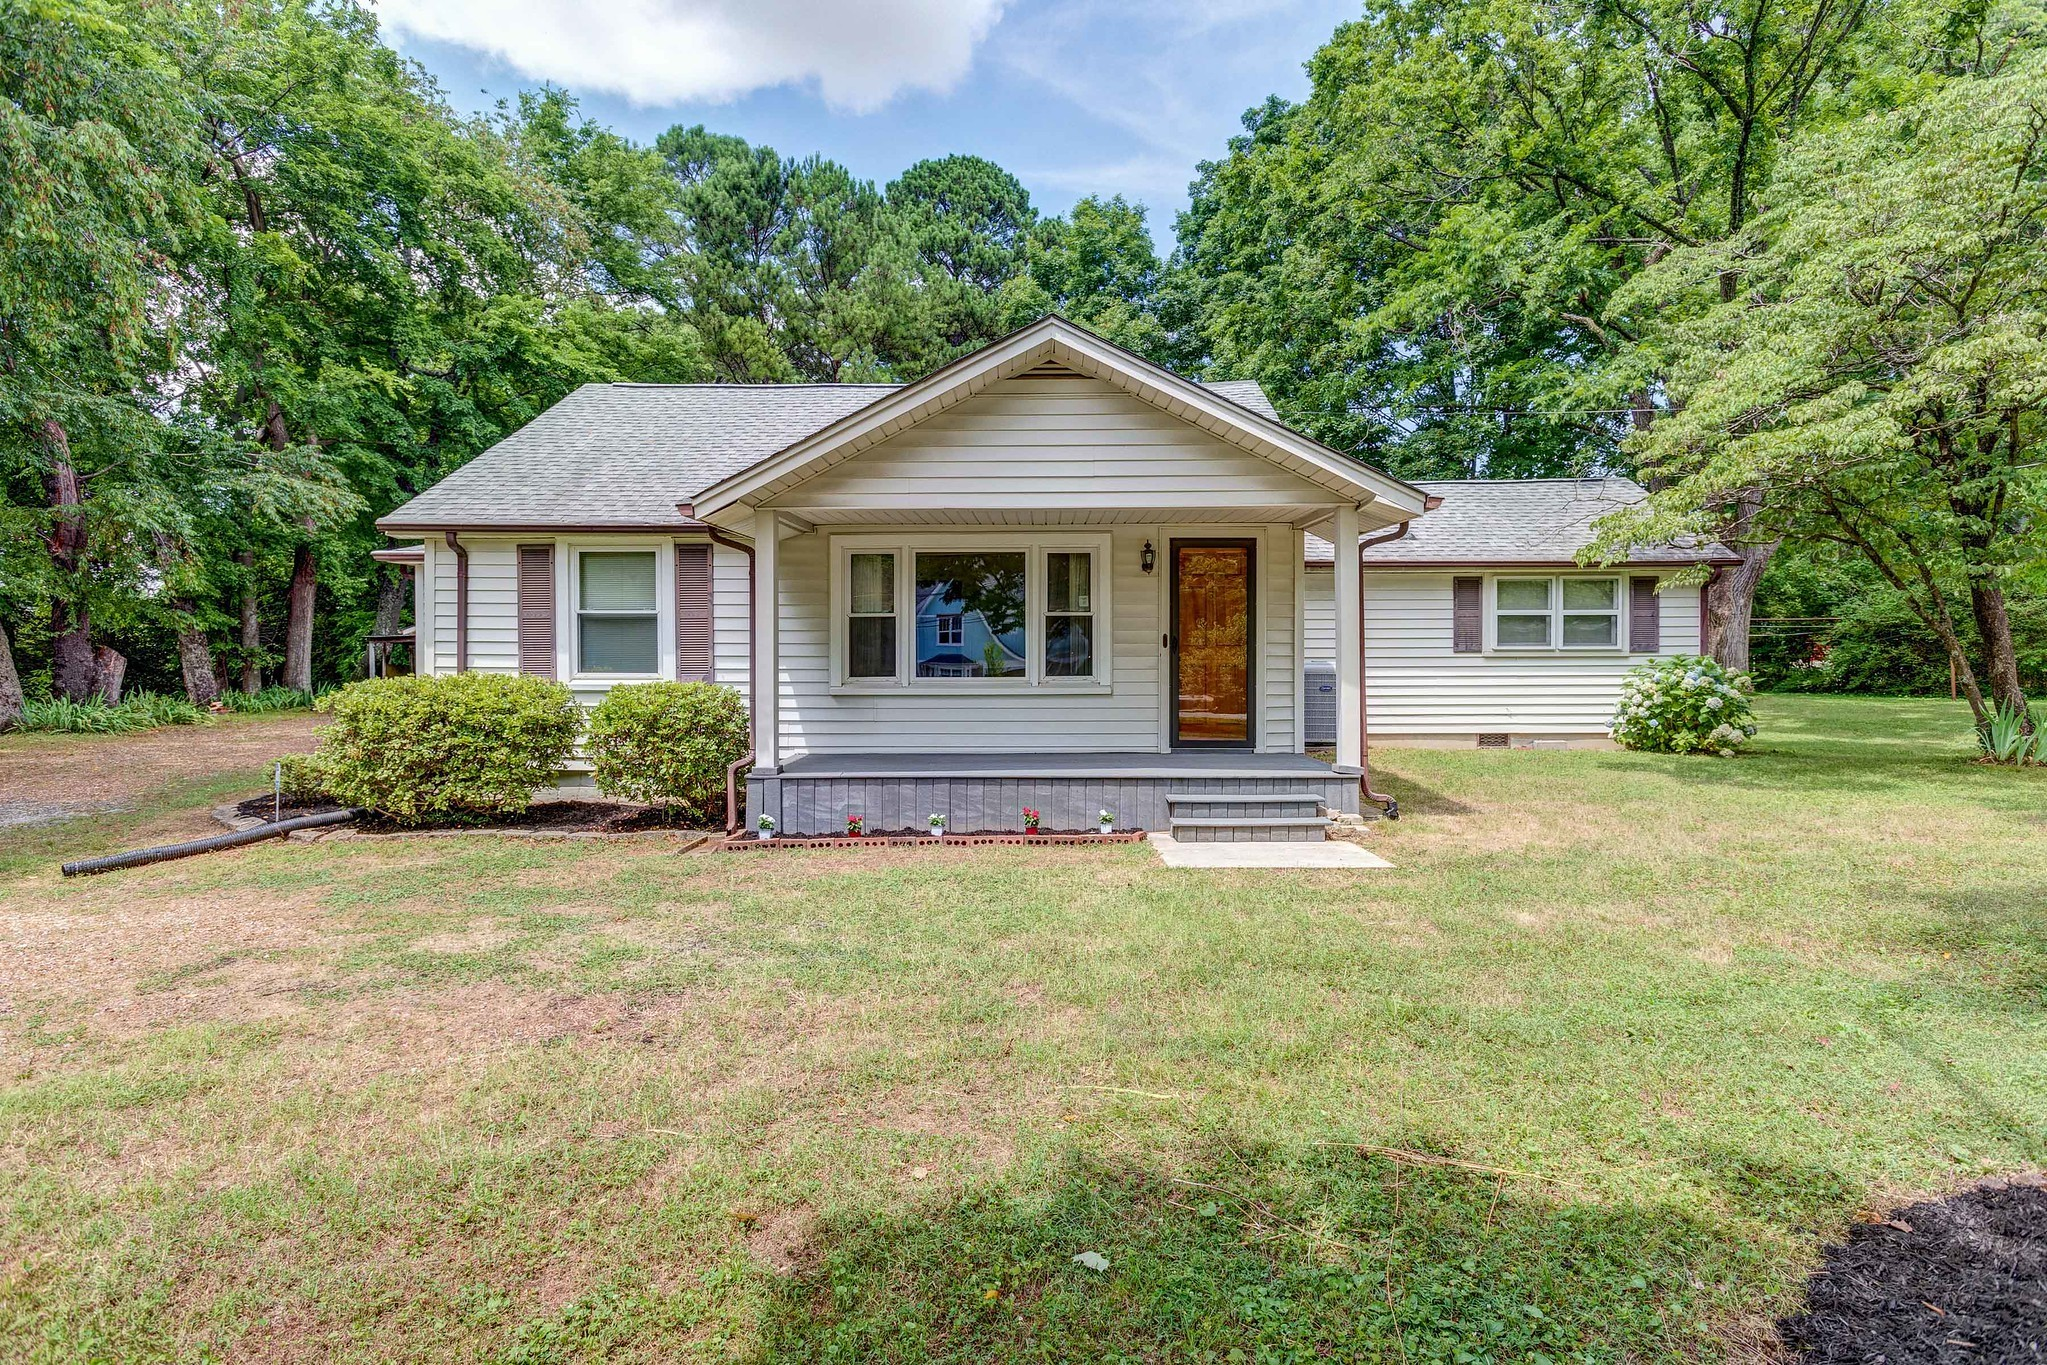 Location! Location! Location! Wonderful home on Large, beautiful, treed lot minutes to Everything Nashville! NO HOA. Could be great Airbnb. Surrounded by New Construction. Fabulous location, minutes to Downtown Nashville, Airport, Interstates, Shops, Dining and More! Live & Love, Hold & Lease or Build Now!